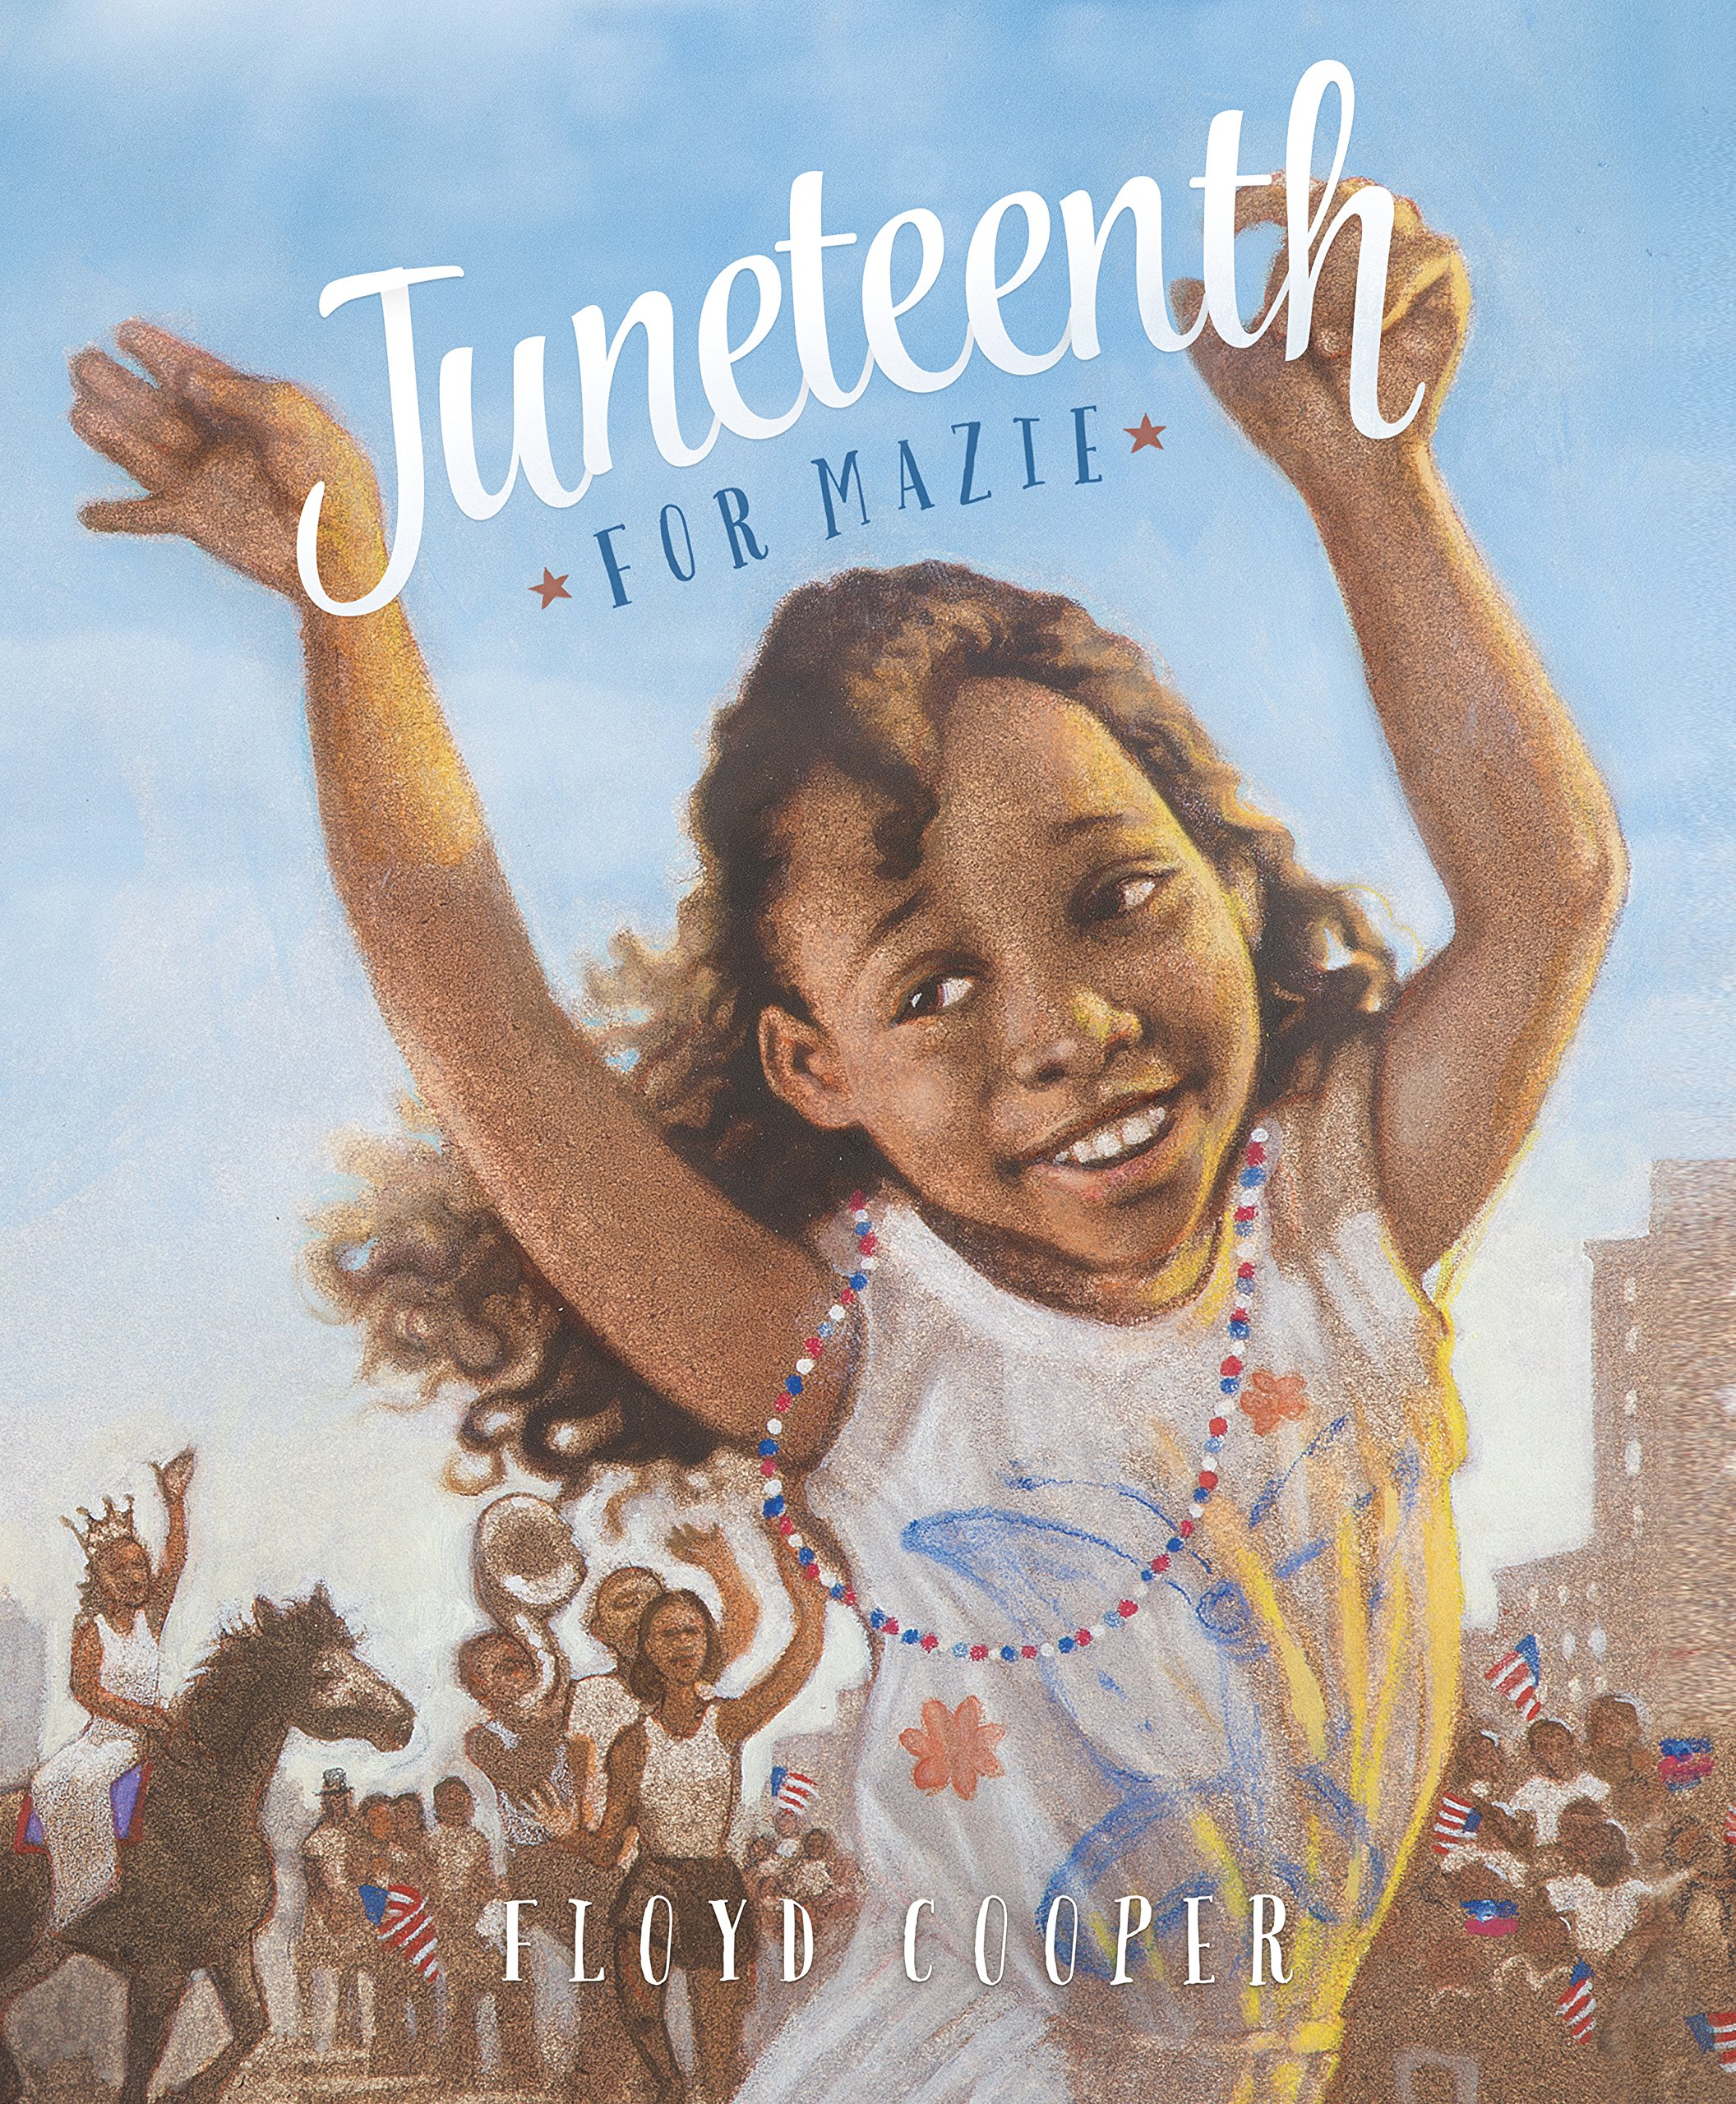 Read Online Juneteenth for Mazie (Fiction Picture Books) pdf